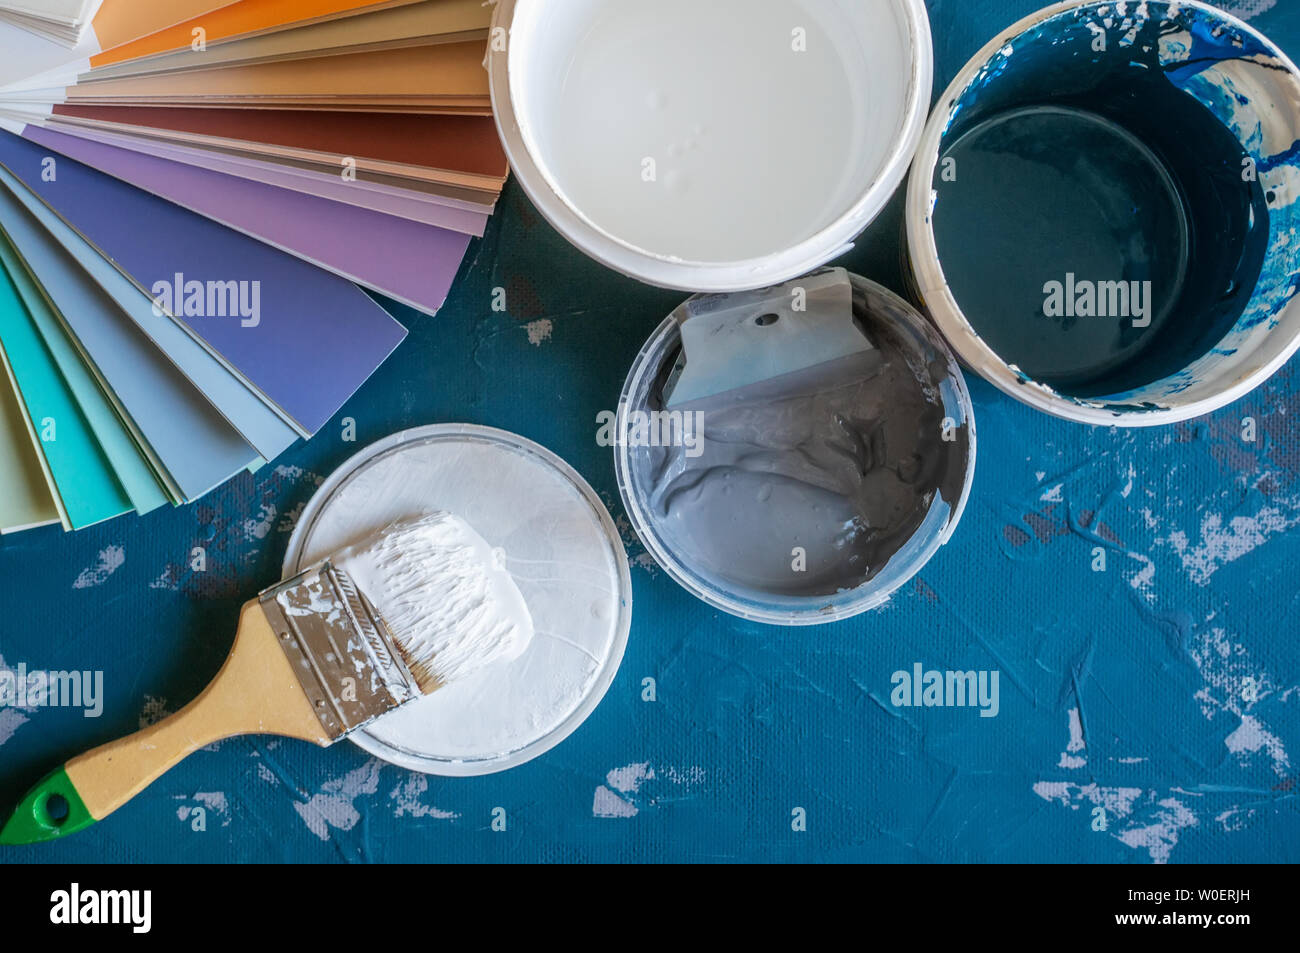 Choose a paint color for the walls. Spatula for painting and wall putty and background in a tray next to a bucket of putty.. Create a background - Stock Image